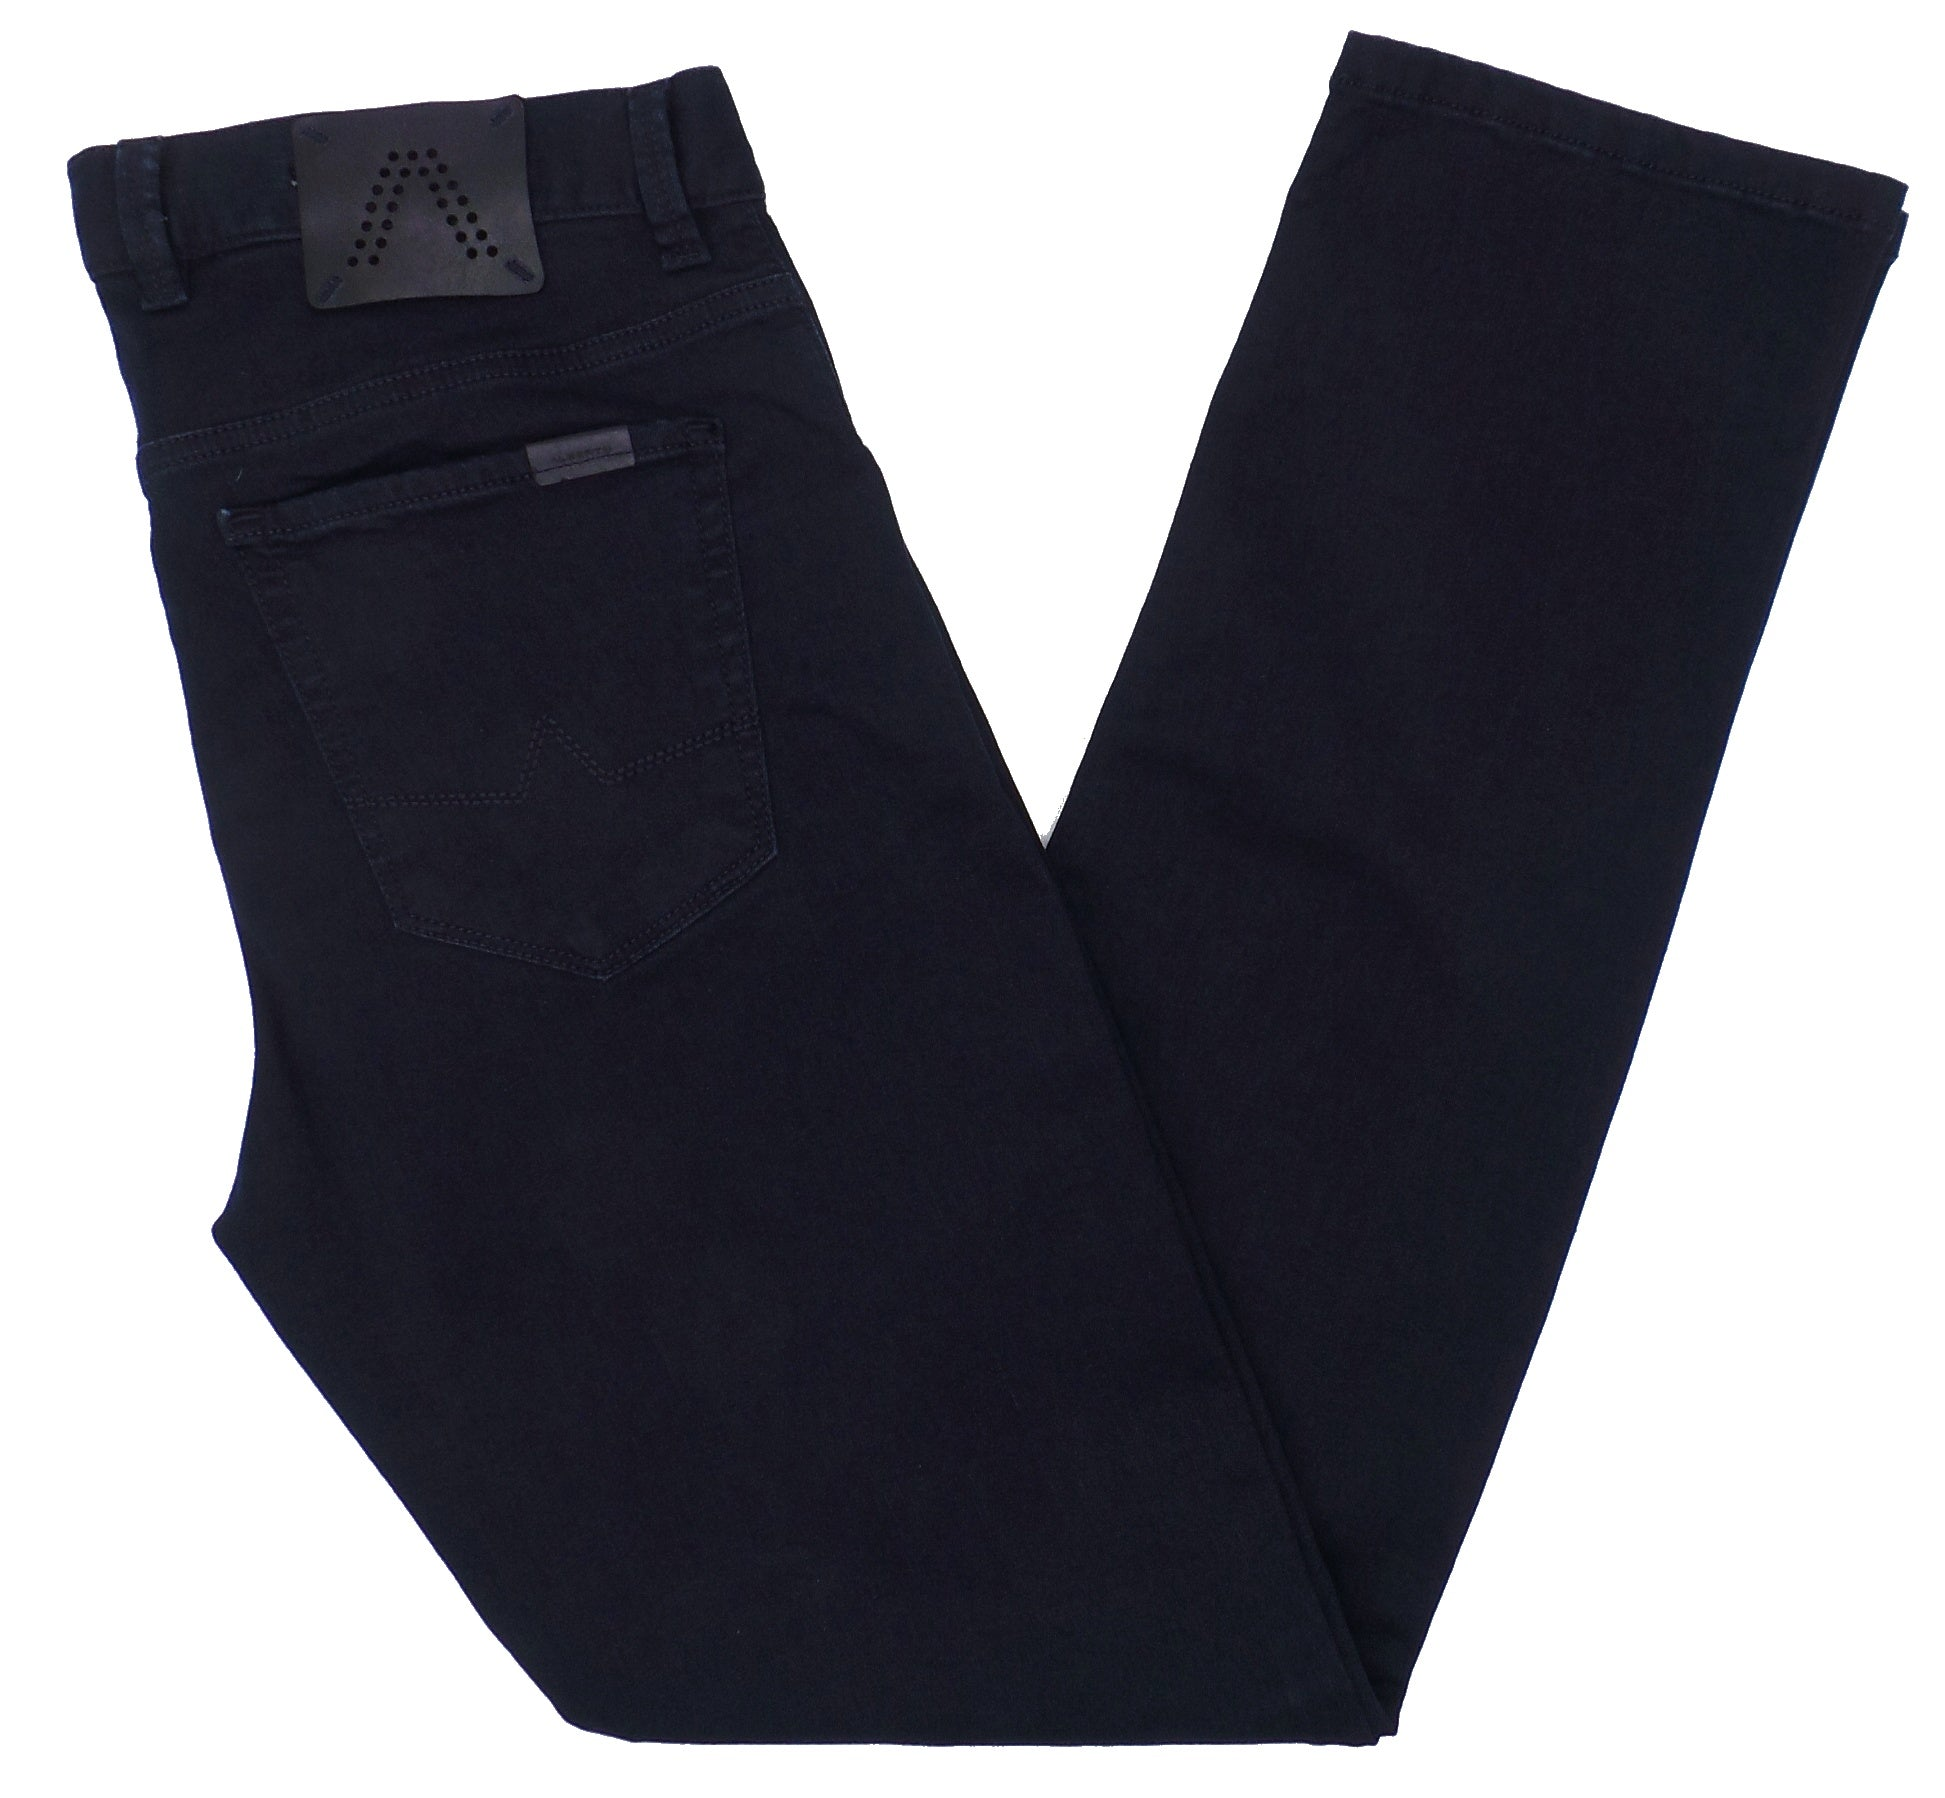 Alberto Stone 1484 Dual FX Dynamic Superfit Overdyed Denim Jeans